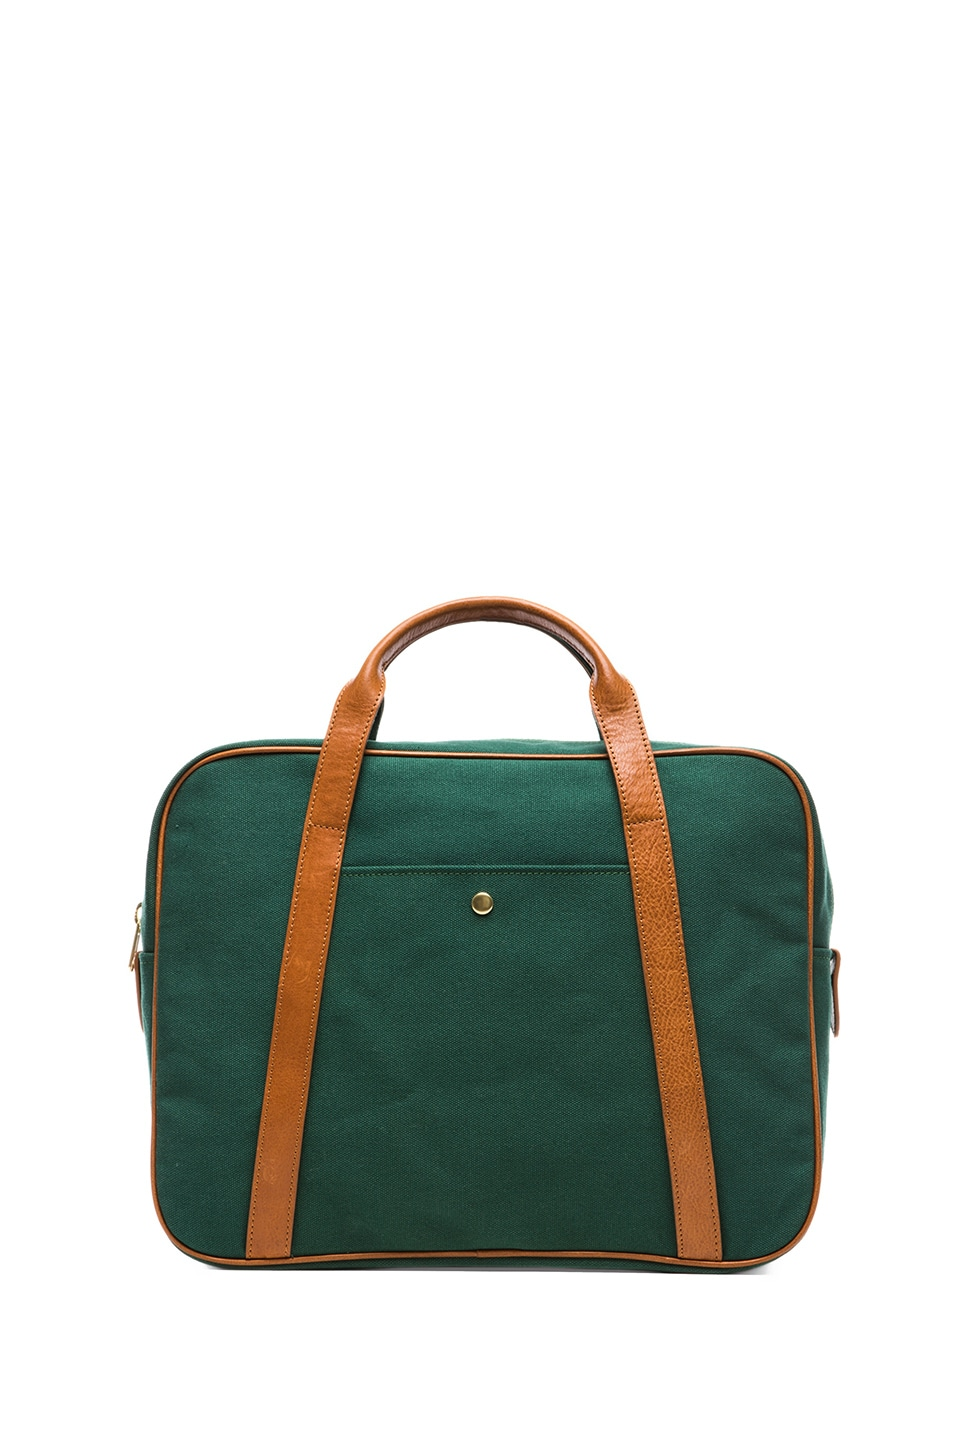 Steven Alan Canvas Briefcase in Forest Green